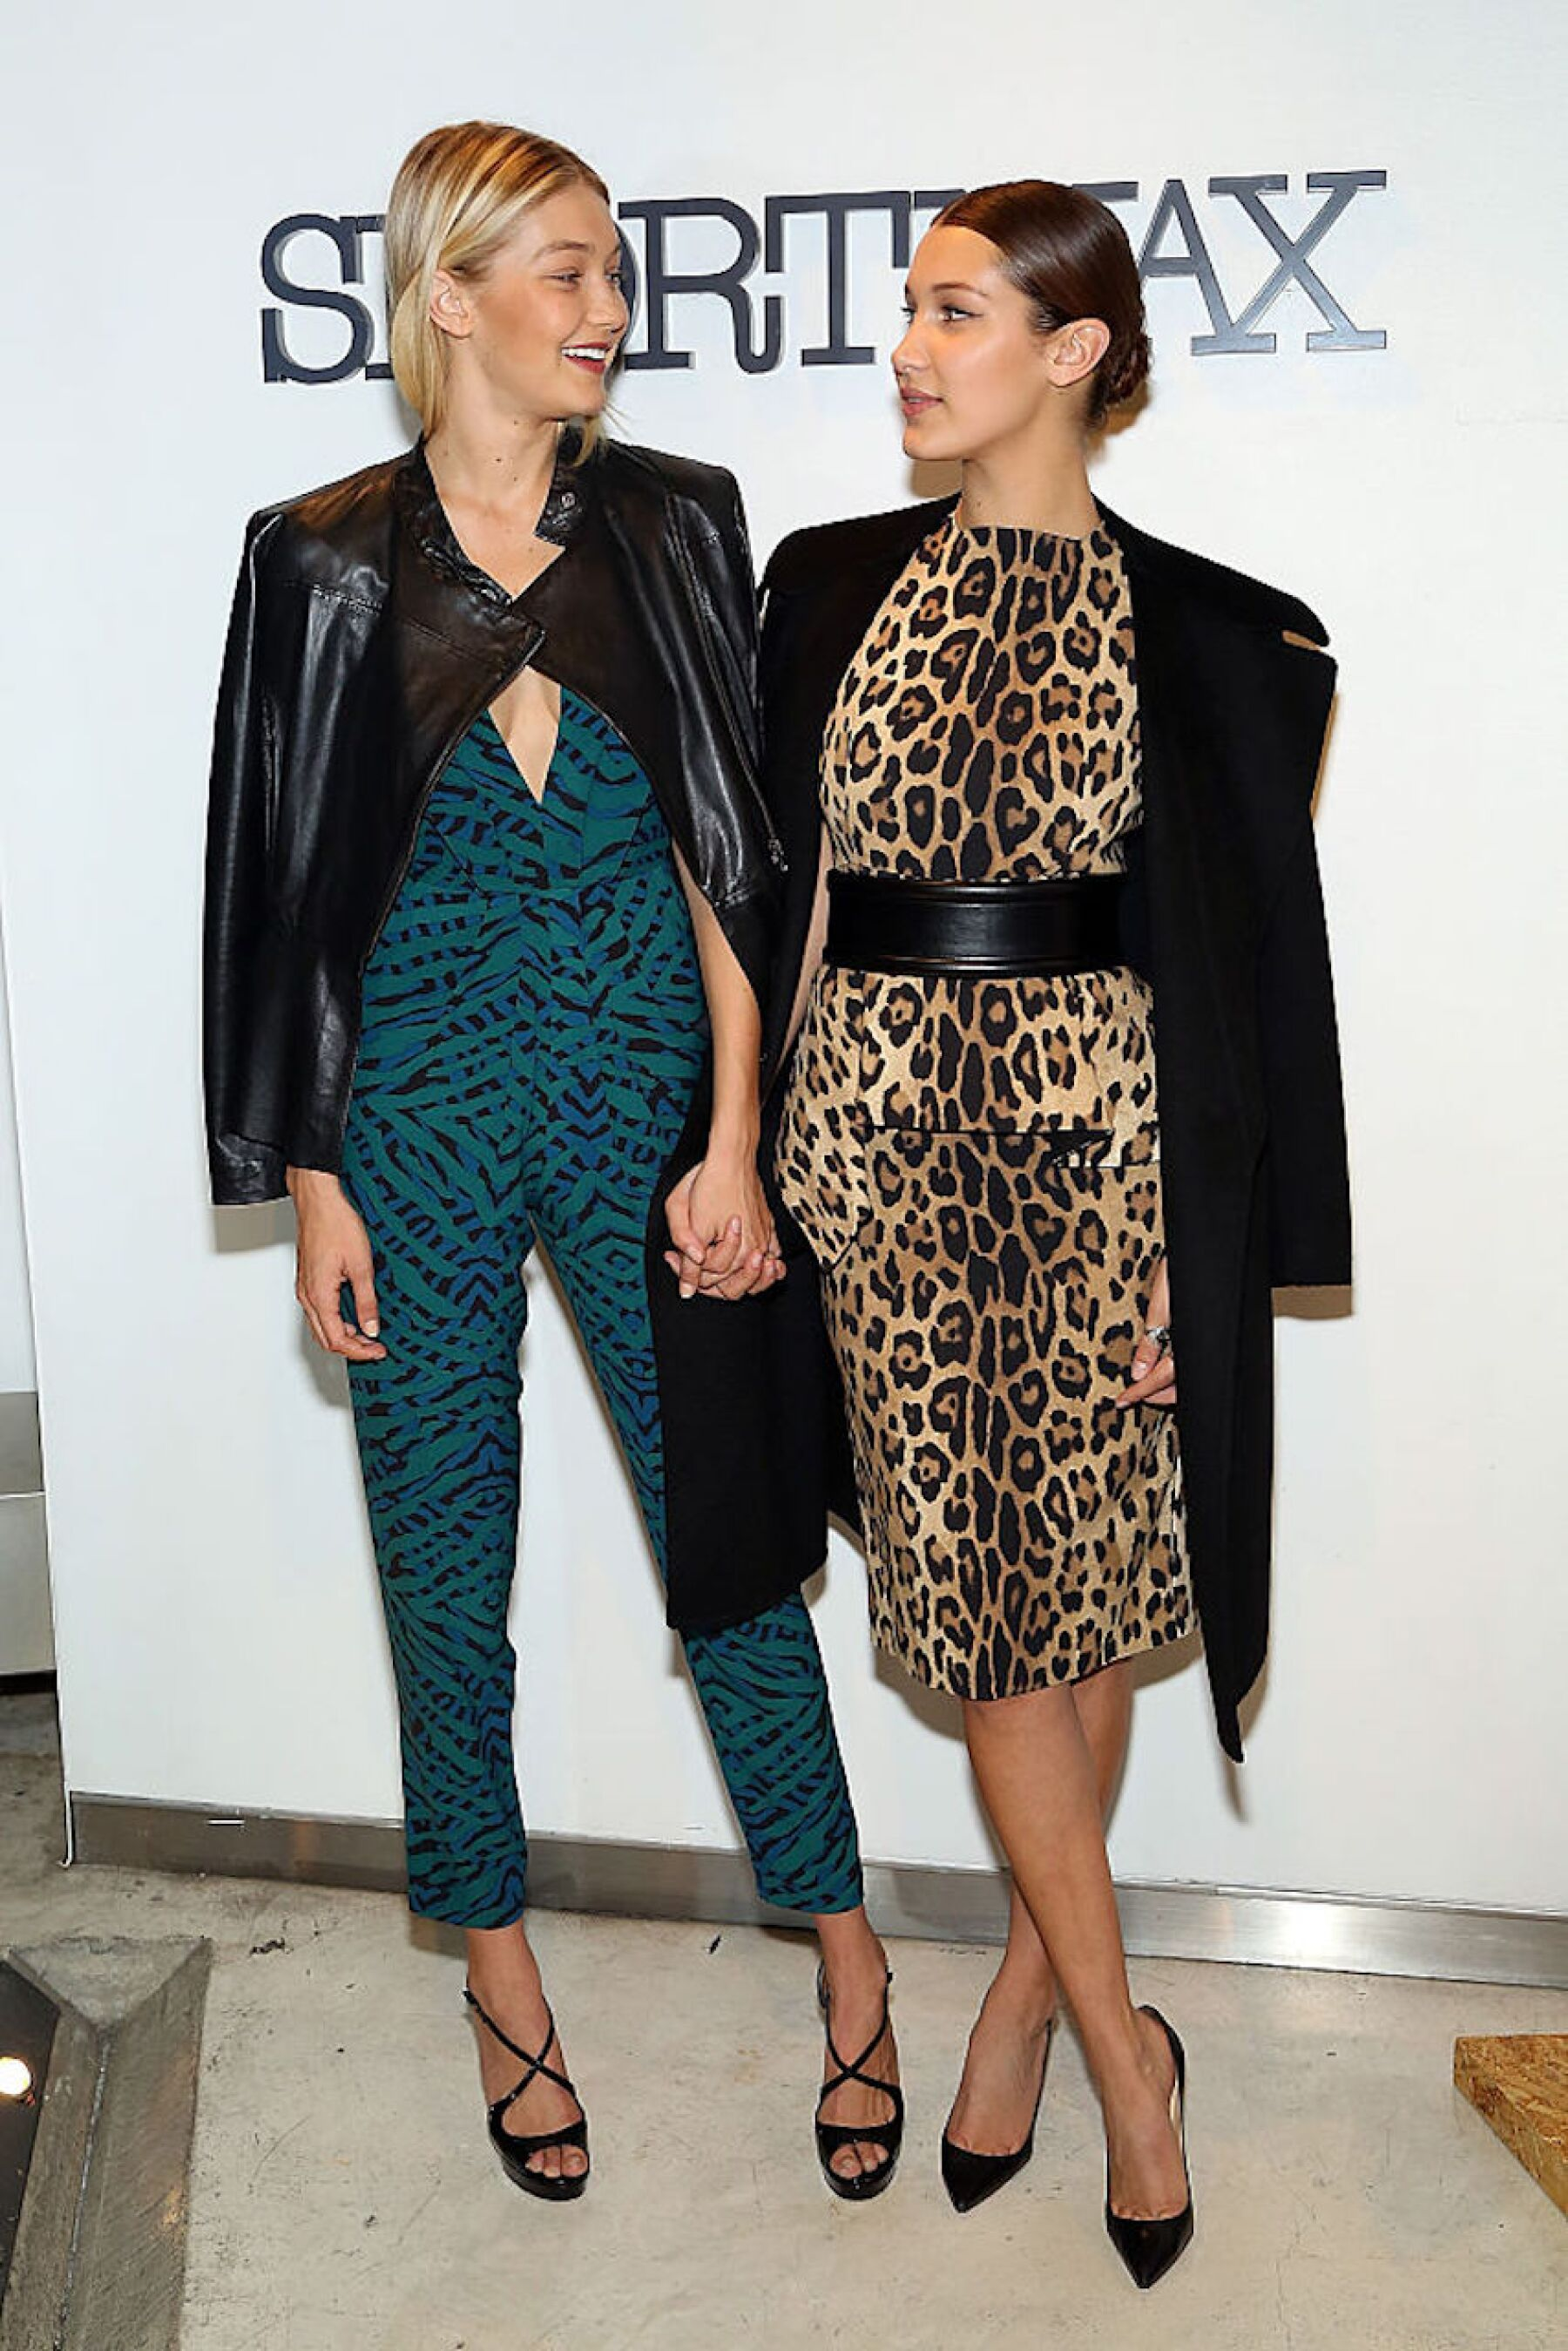 Sportmax And Teen Vogue Celebrate The Fall/Winter 2014 Collection